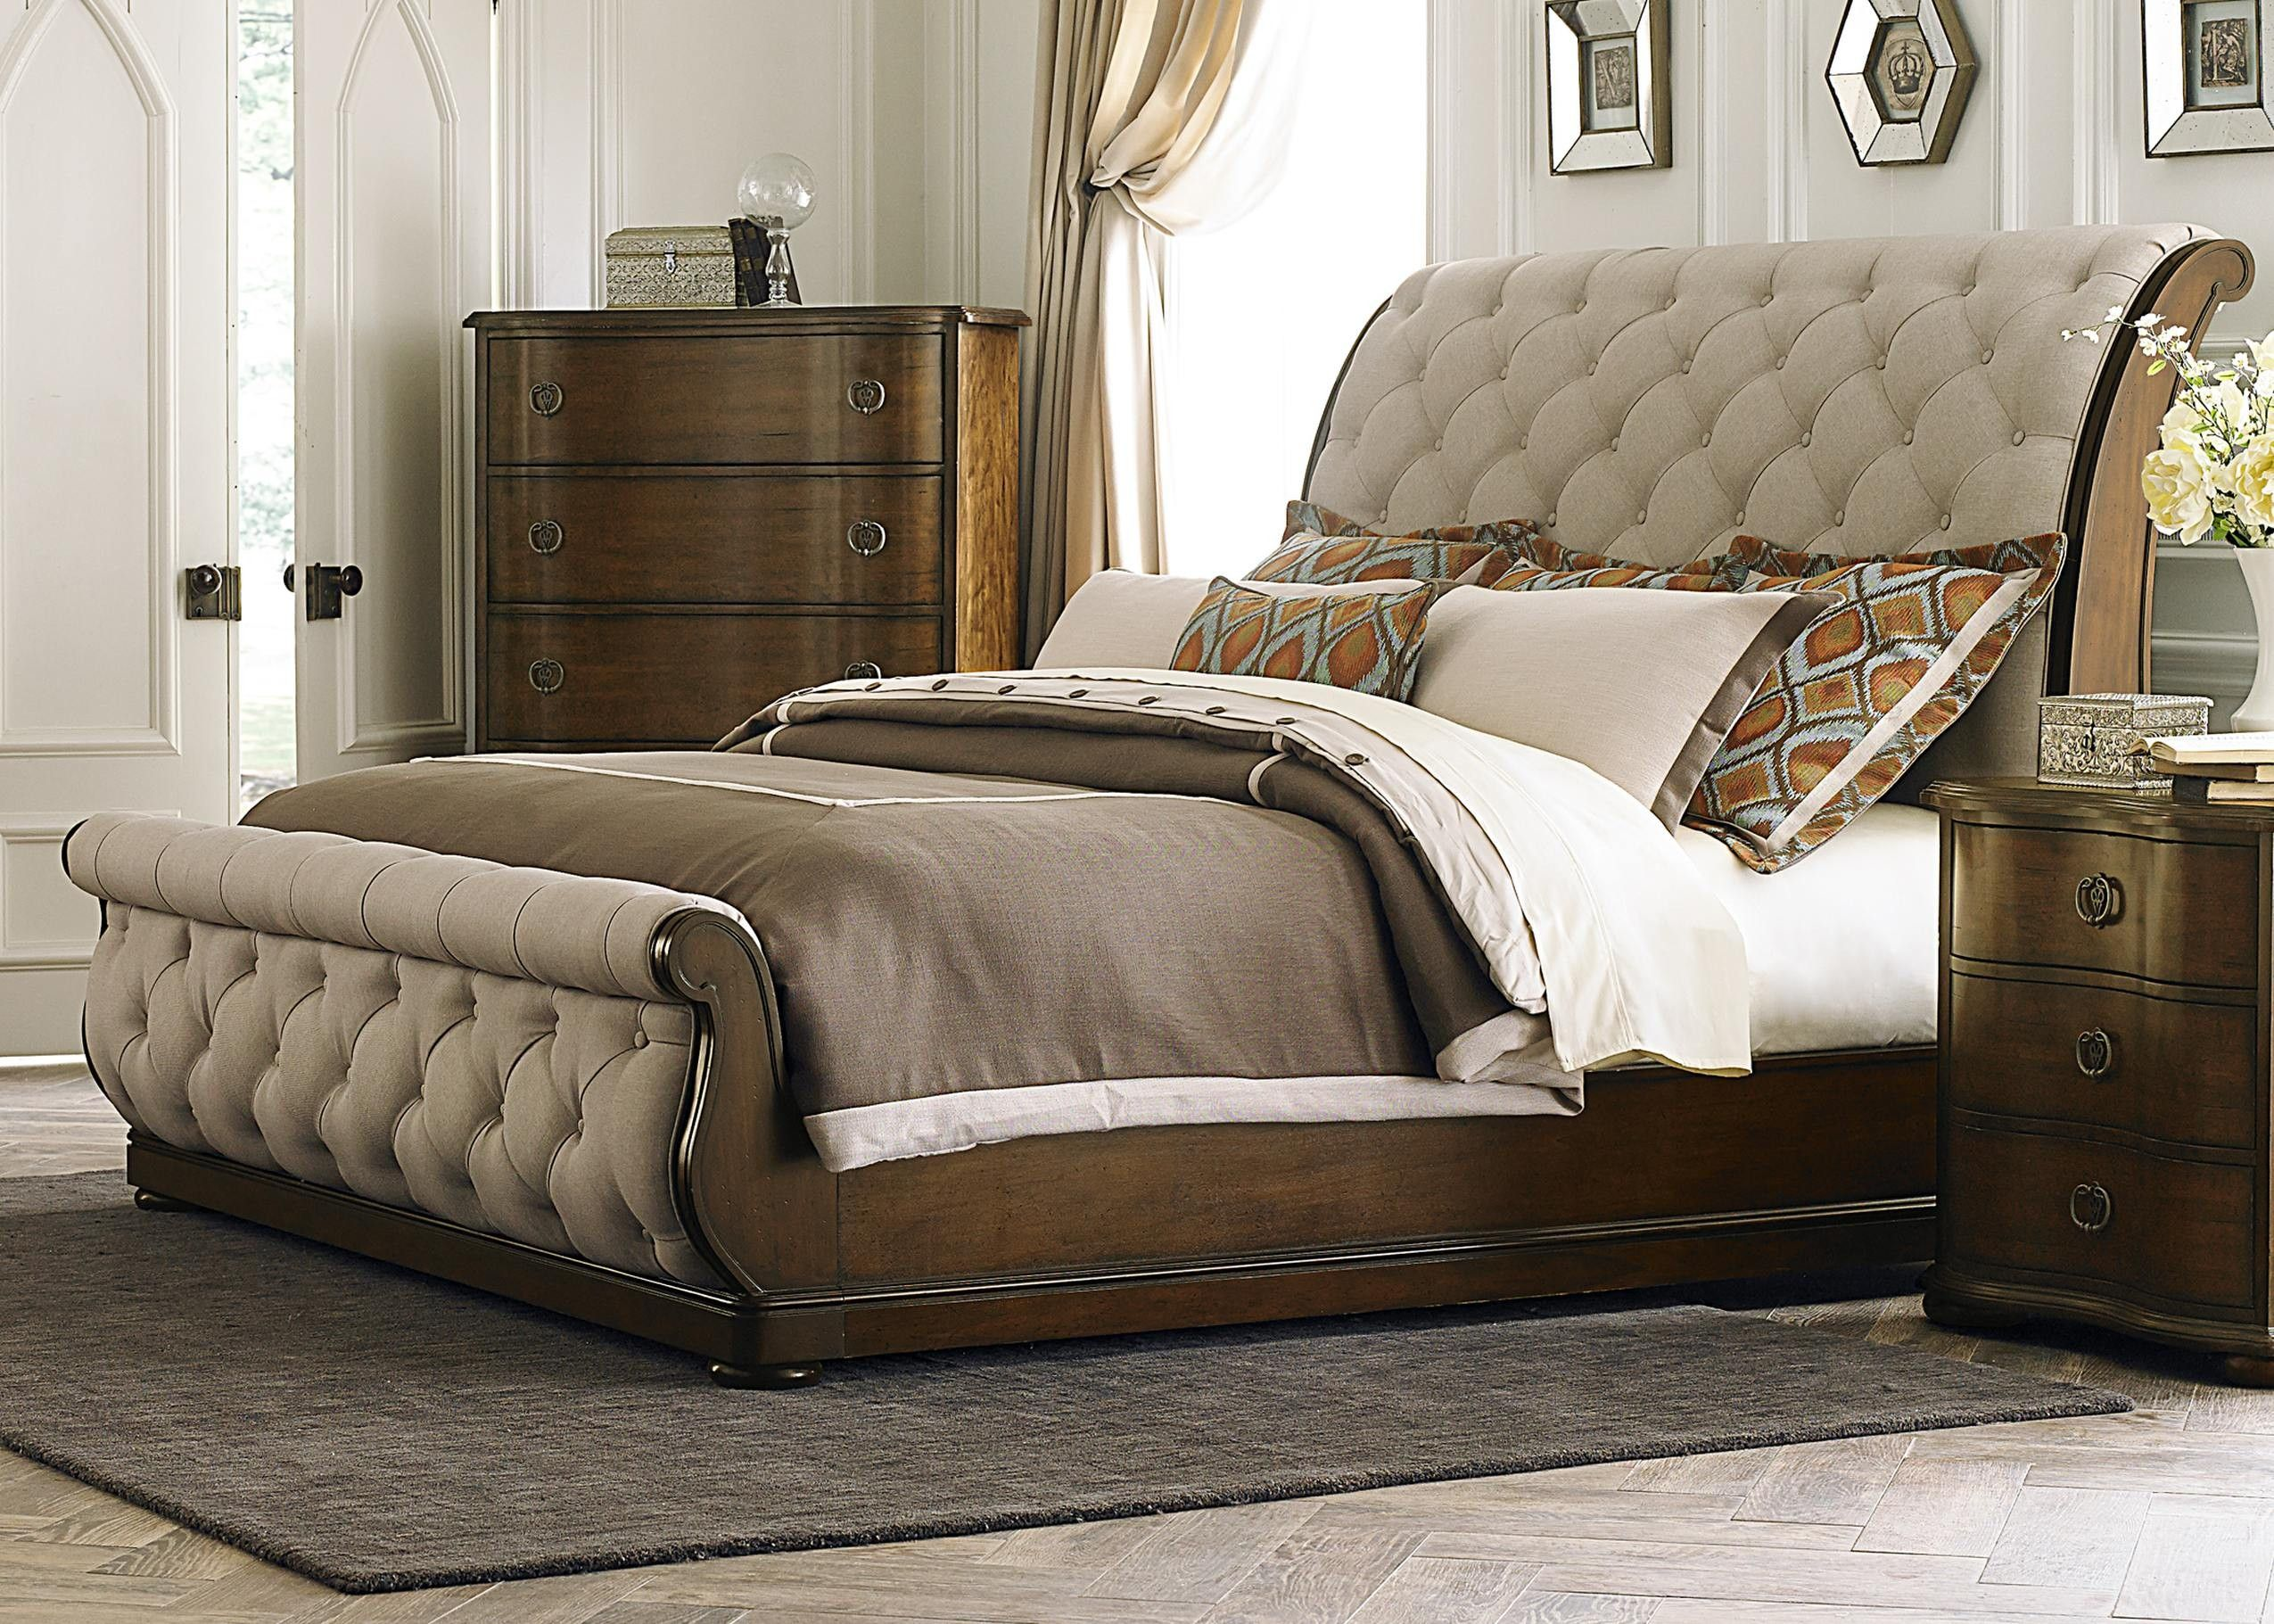 Liberty Furniture Cotswold Tufted Linen Upholstered Sleigh Bed 545br By  Liberty Furniture For $1,38486